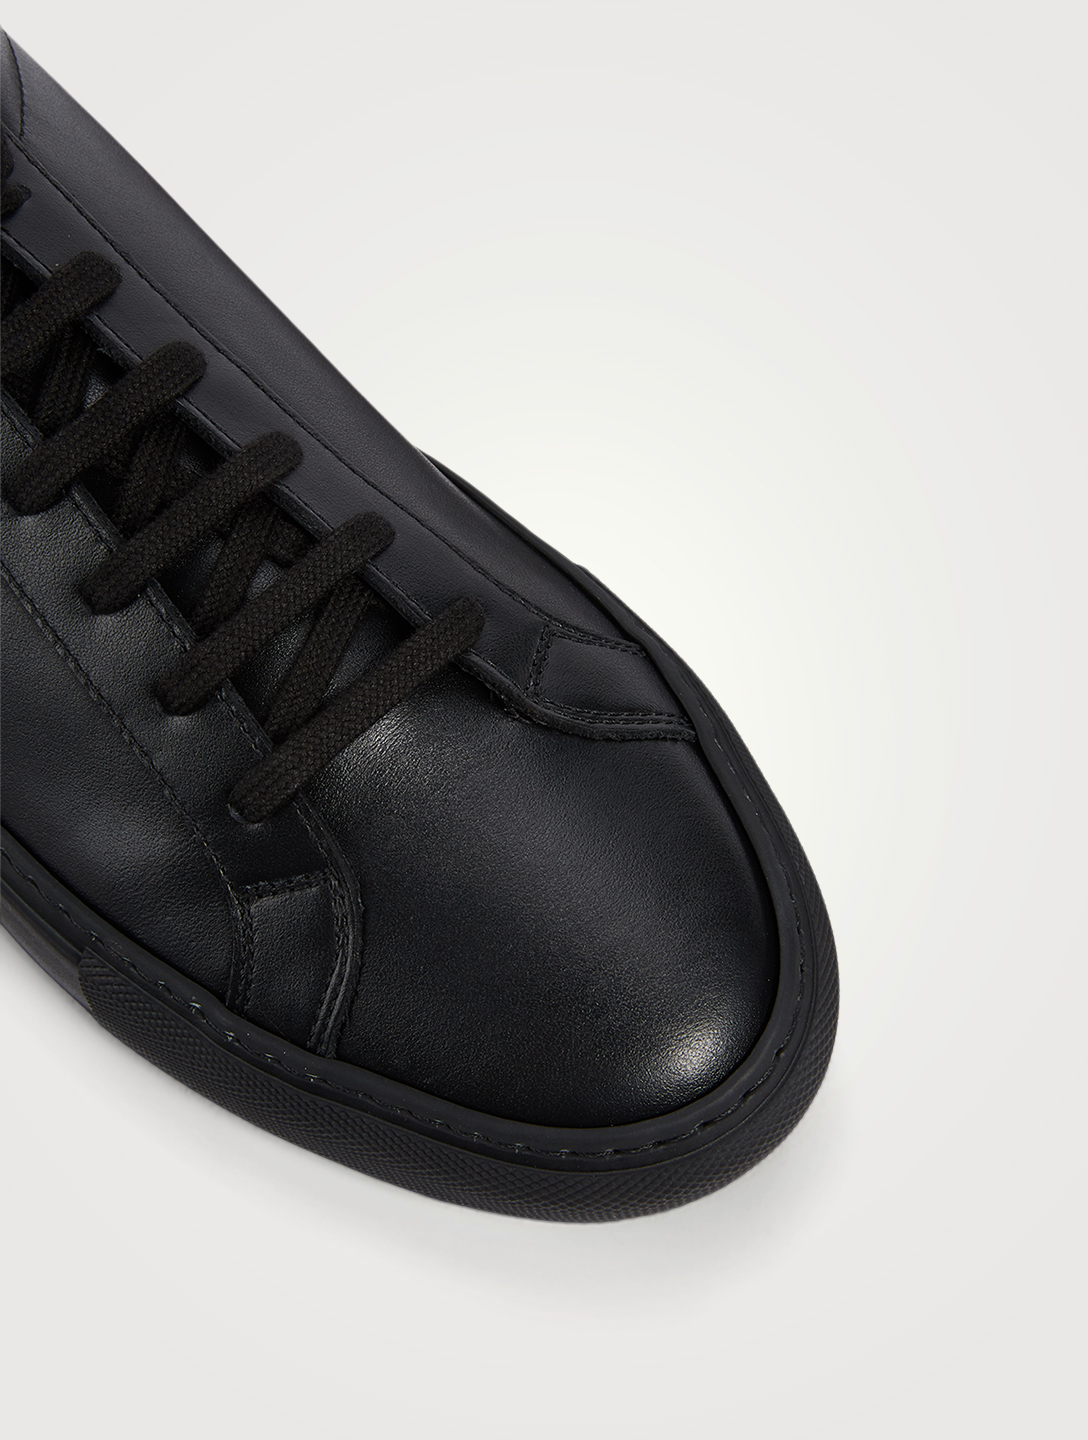 COMMON PROJECTS Original Achilles Leather Sneakers Men's Black